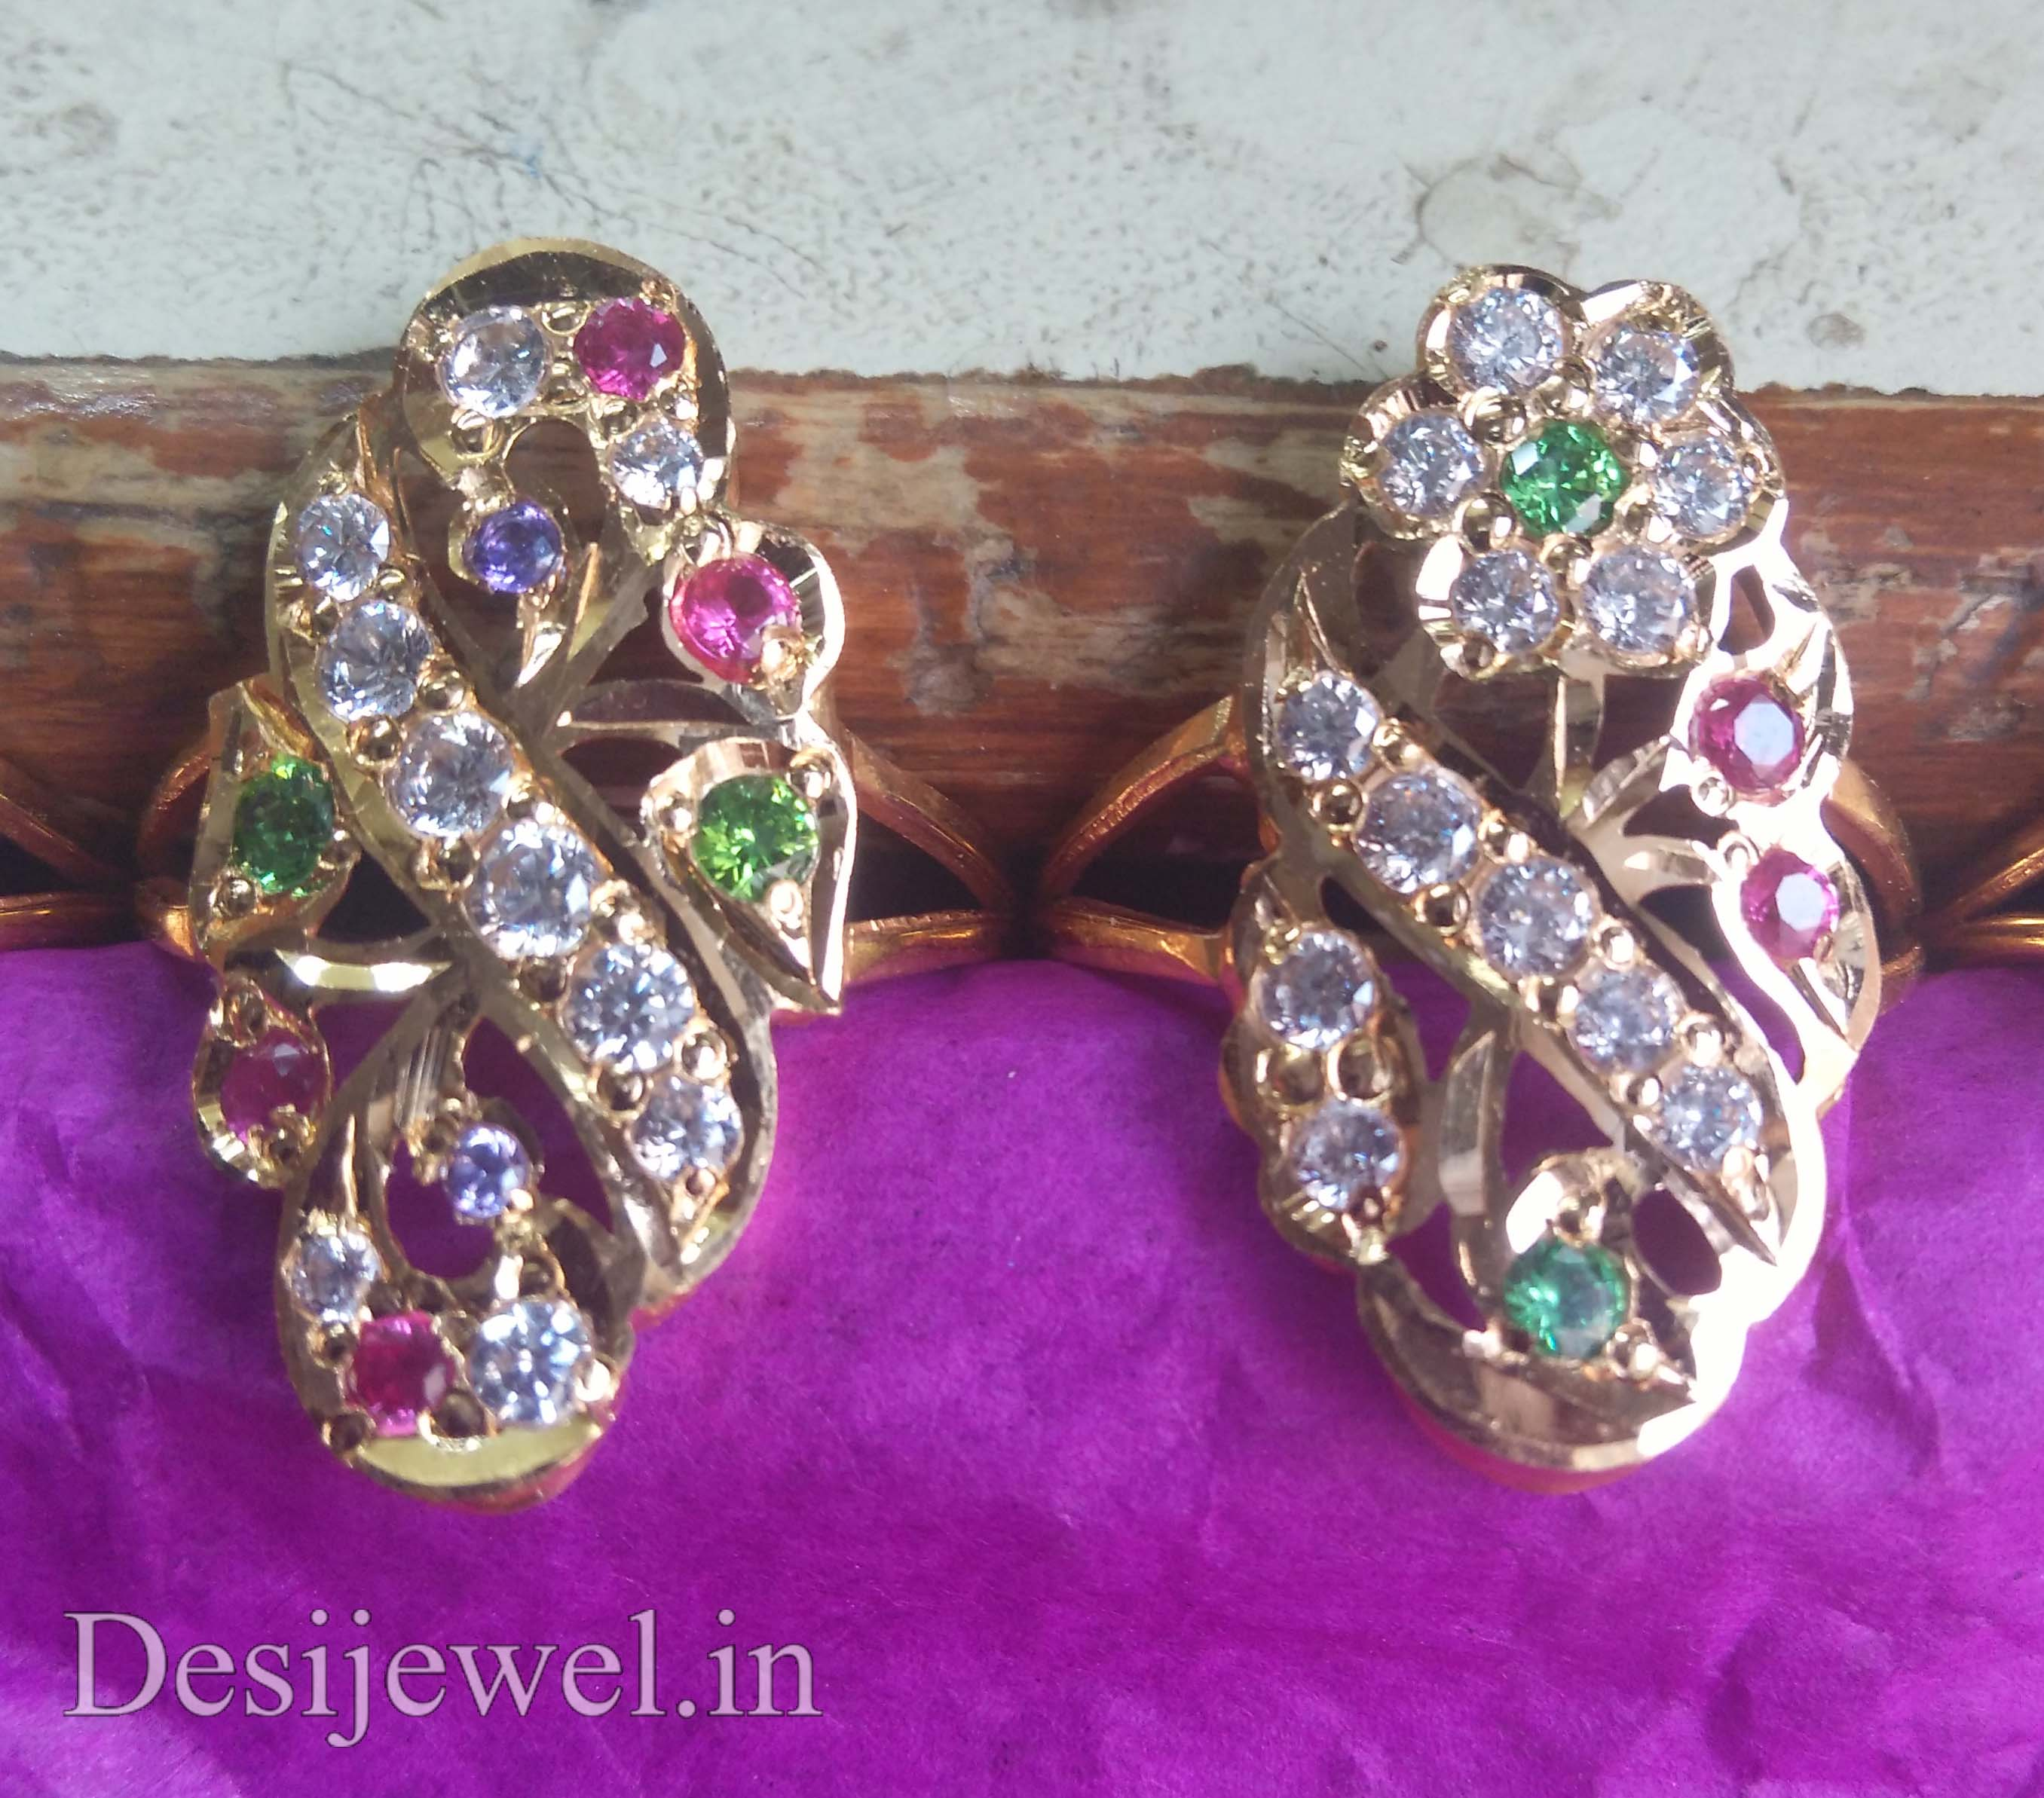 Rajasthani Gold Desi Ladies Ring Jewellery  in Jodhpur with weight of 4 GM